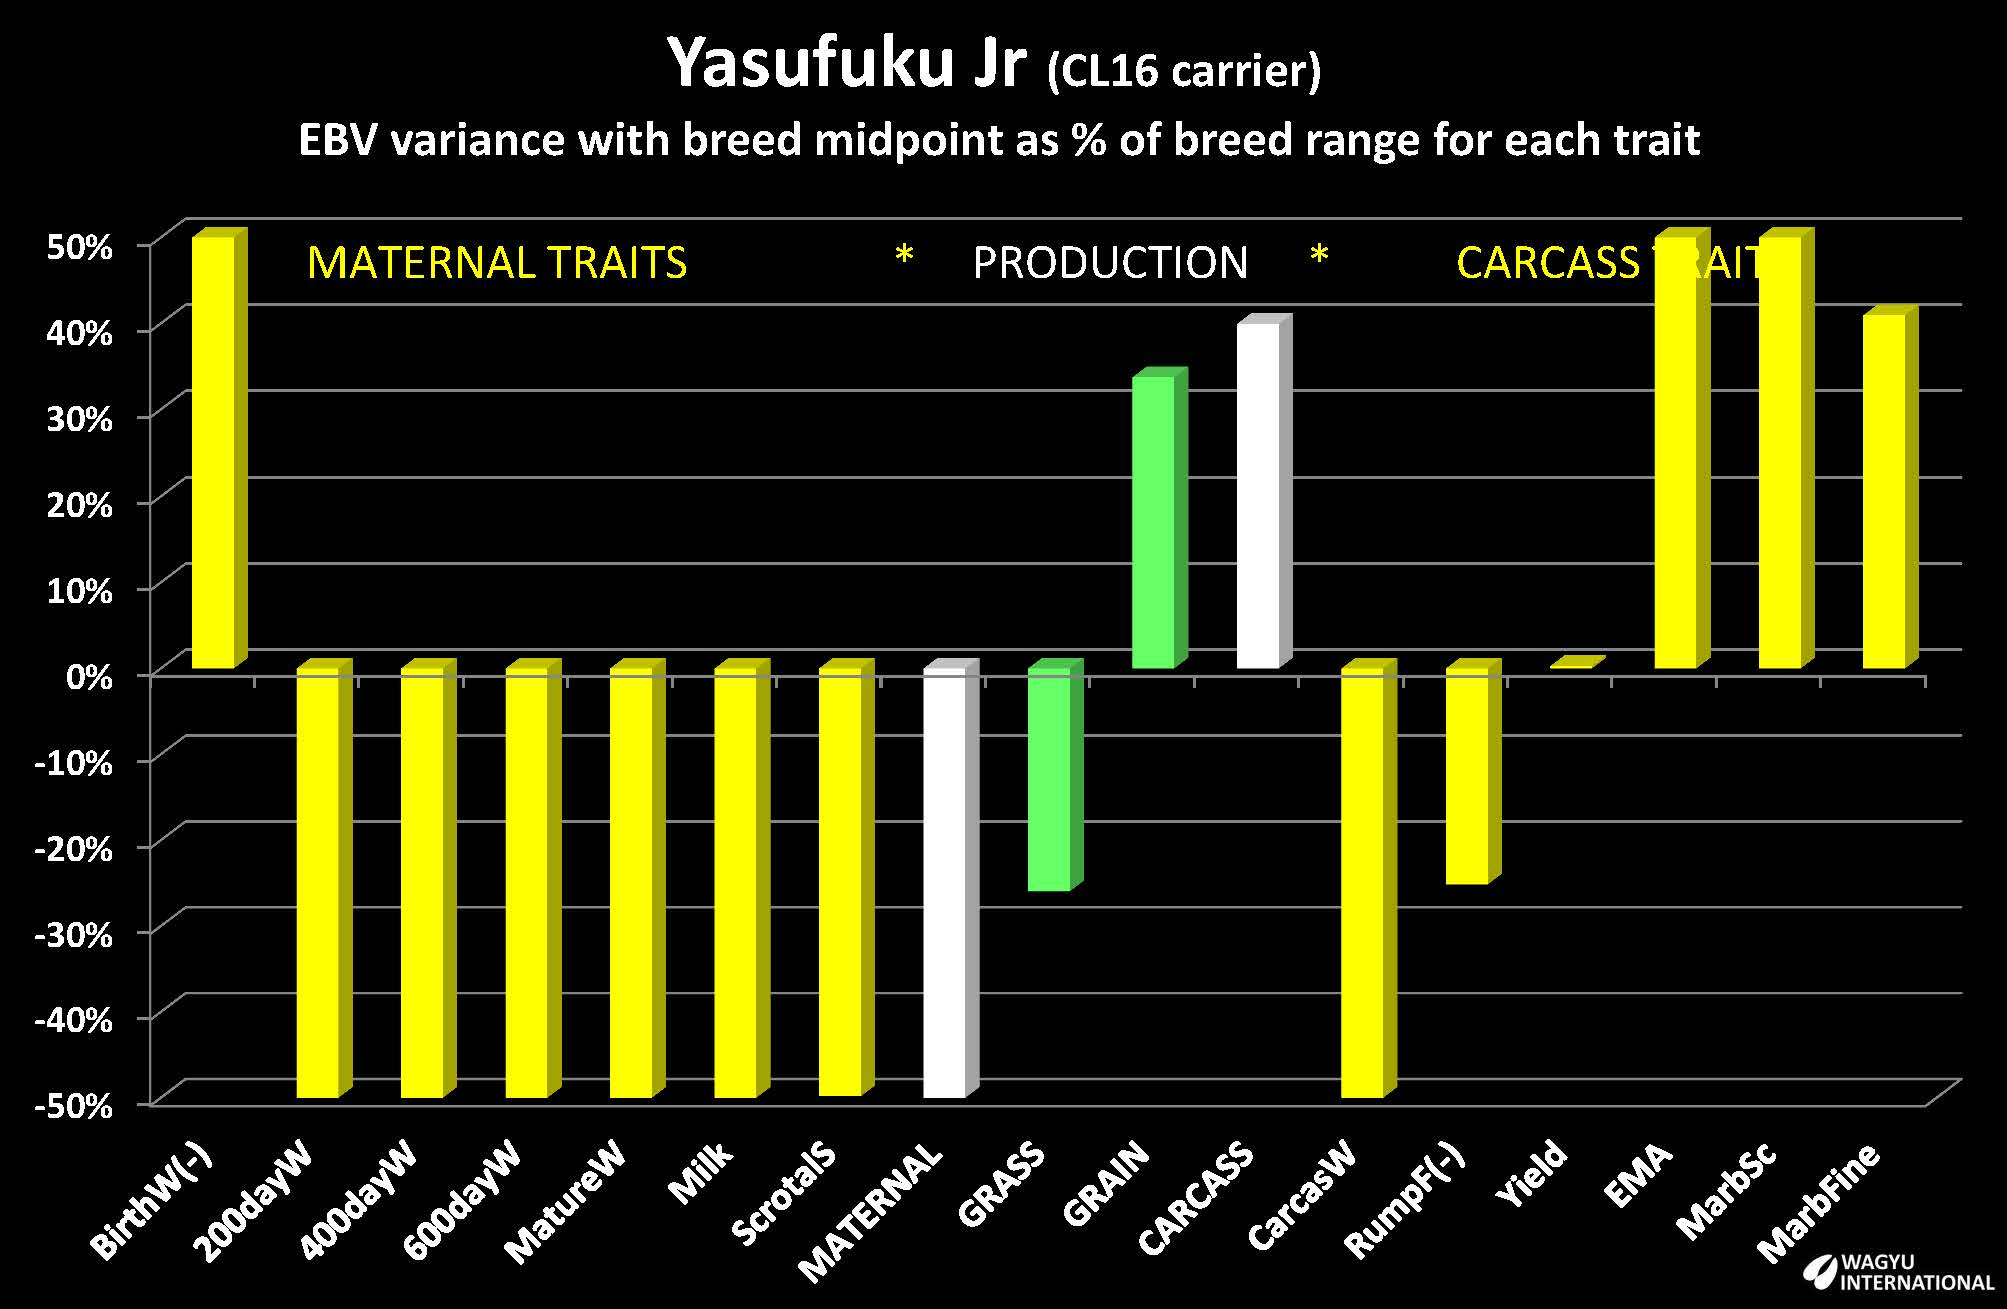 Estimated Breeding Values for Yasufuku Jr charted by Wagyu International